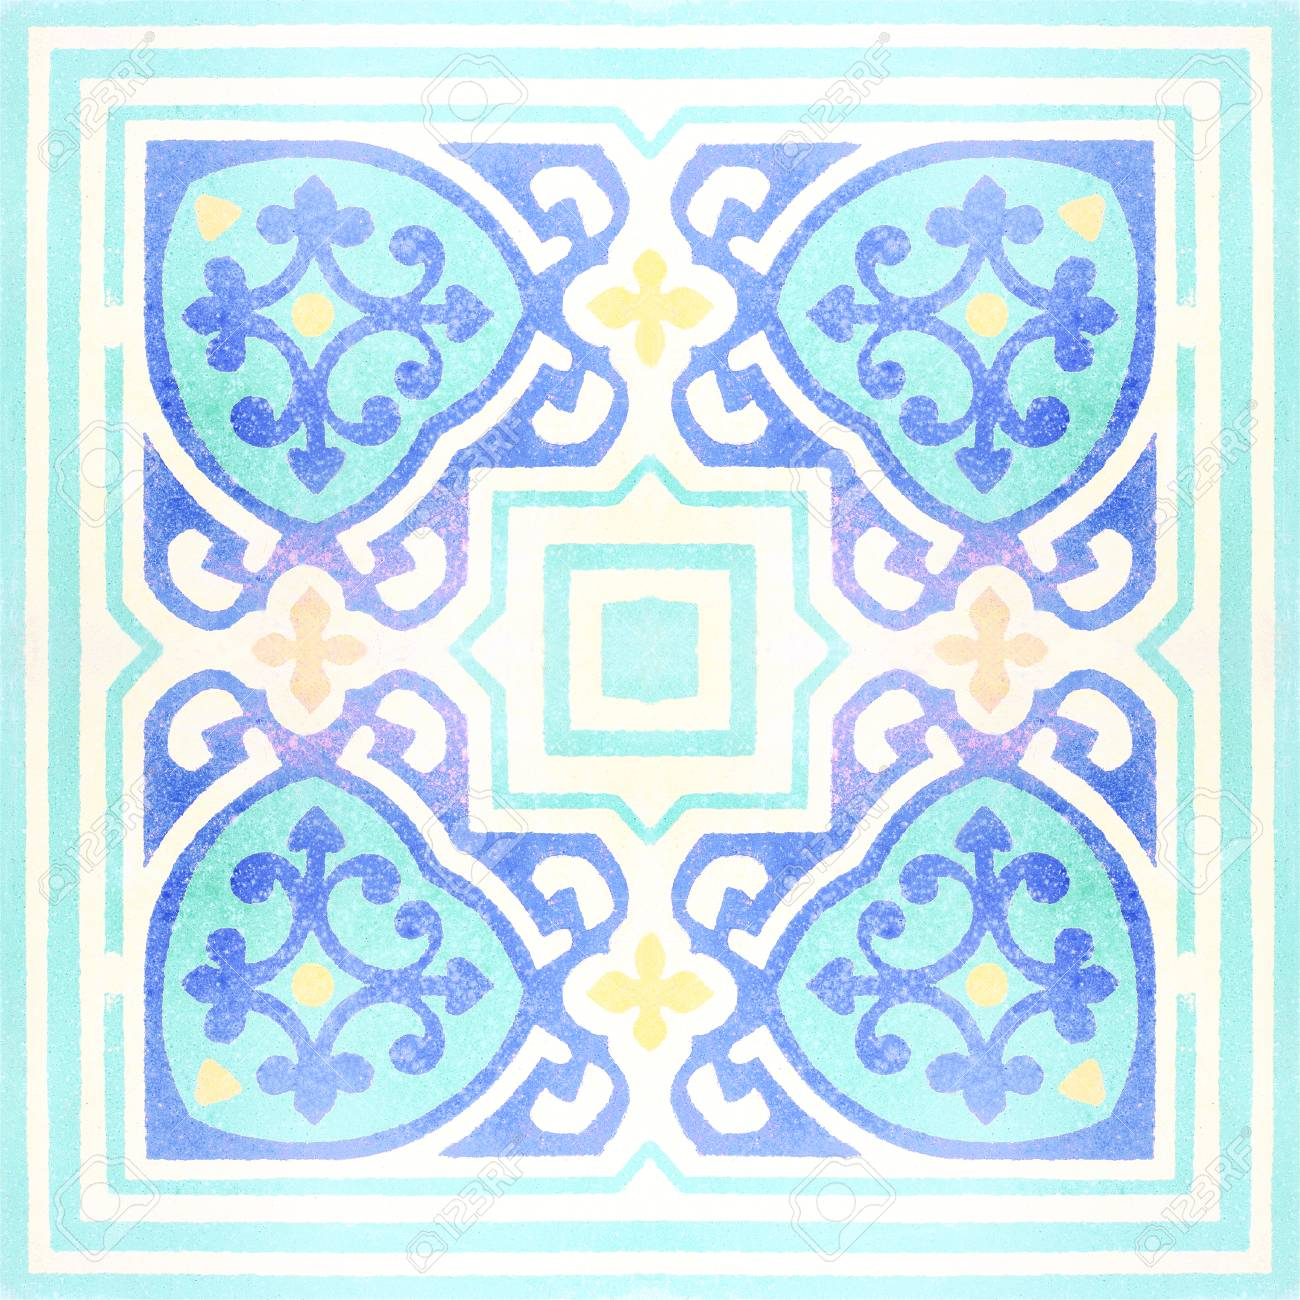 Decorative Ceramic Tiles Patterns Texture Background In The Park